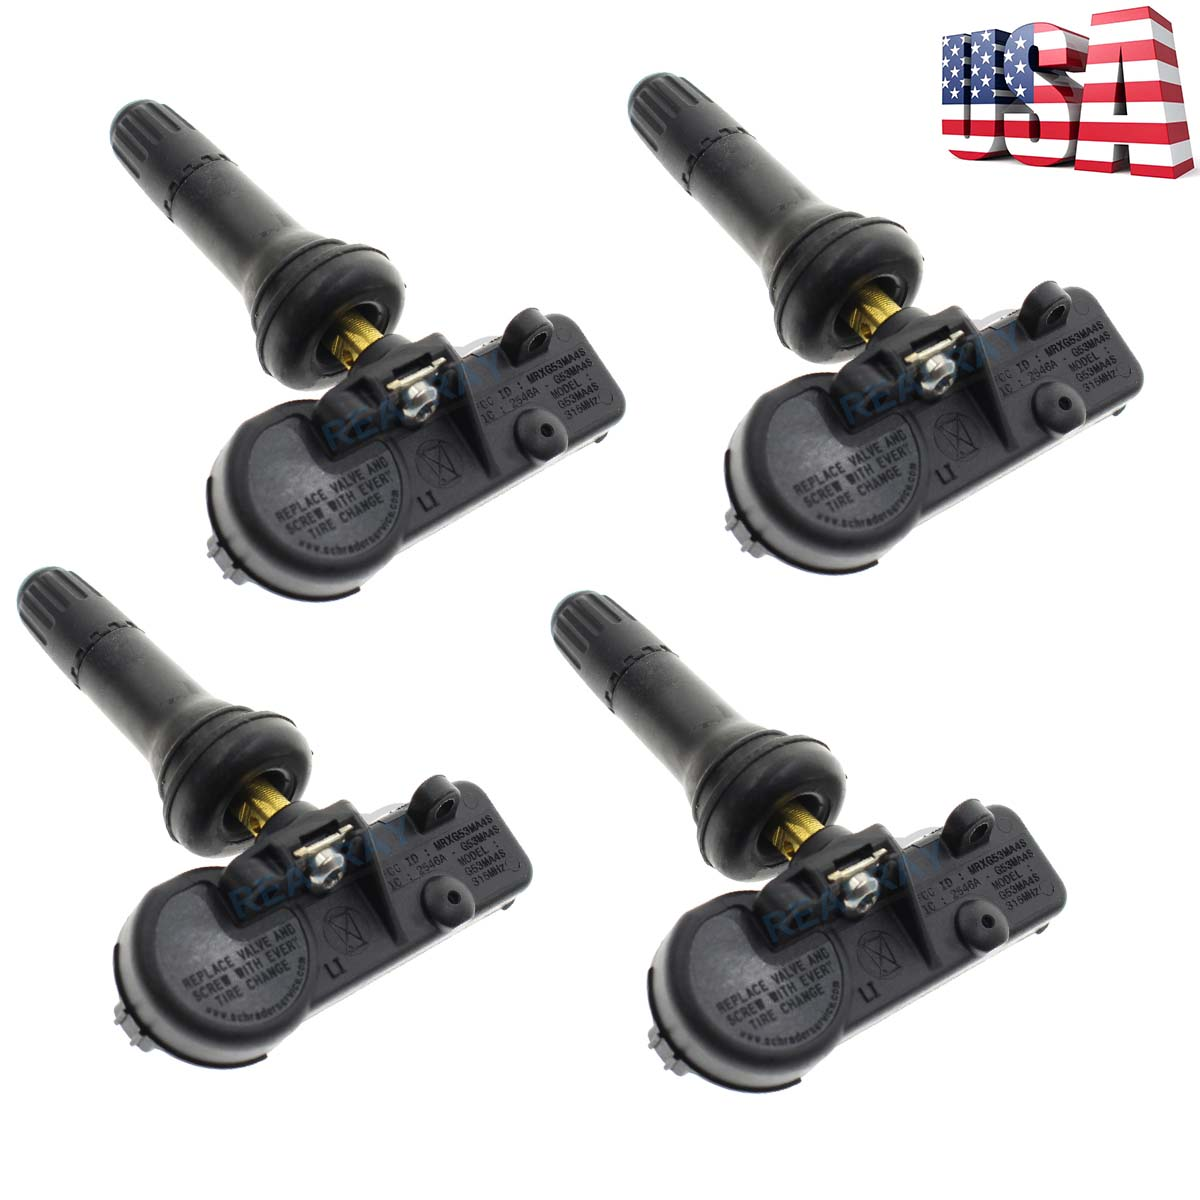 Car Tire Pressure Monitoring System TPMS Sensor for GM Chevy 22853741 13586335 4pcs Tire Pressure Sensor Compatible with Chevy GM Pontiac Buick Cadillac Hummer